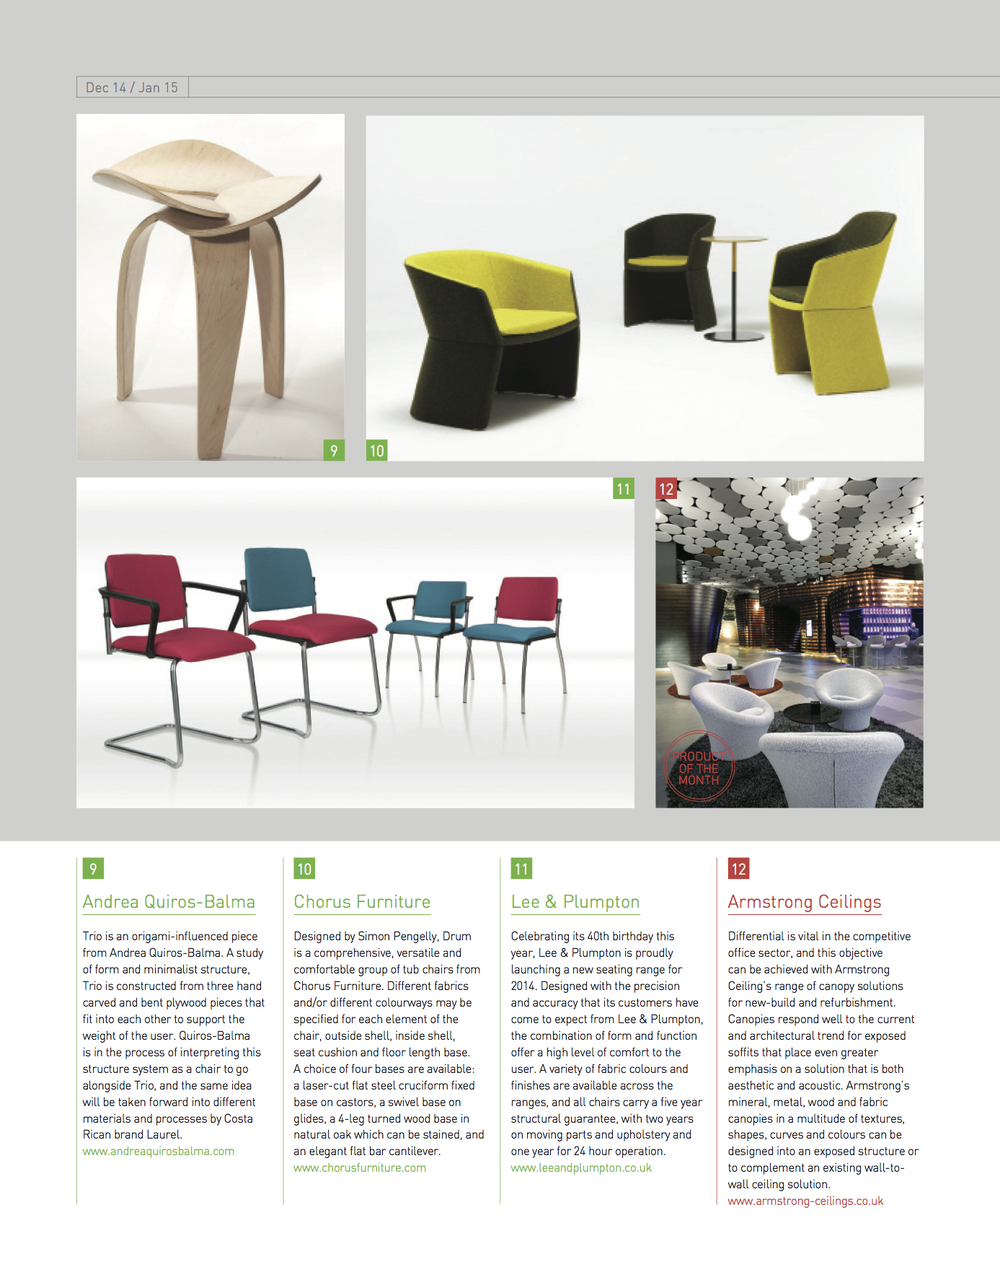 On Office Magazine. December/January 2015 http://www.onofficemagazine.com/directory/item/3417-trio-andreas-quiros-balma